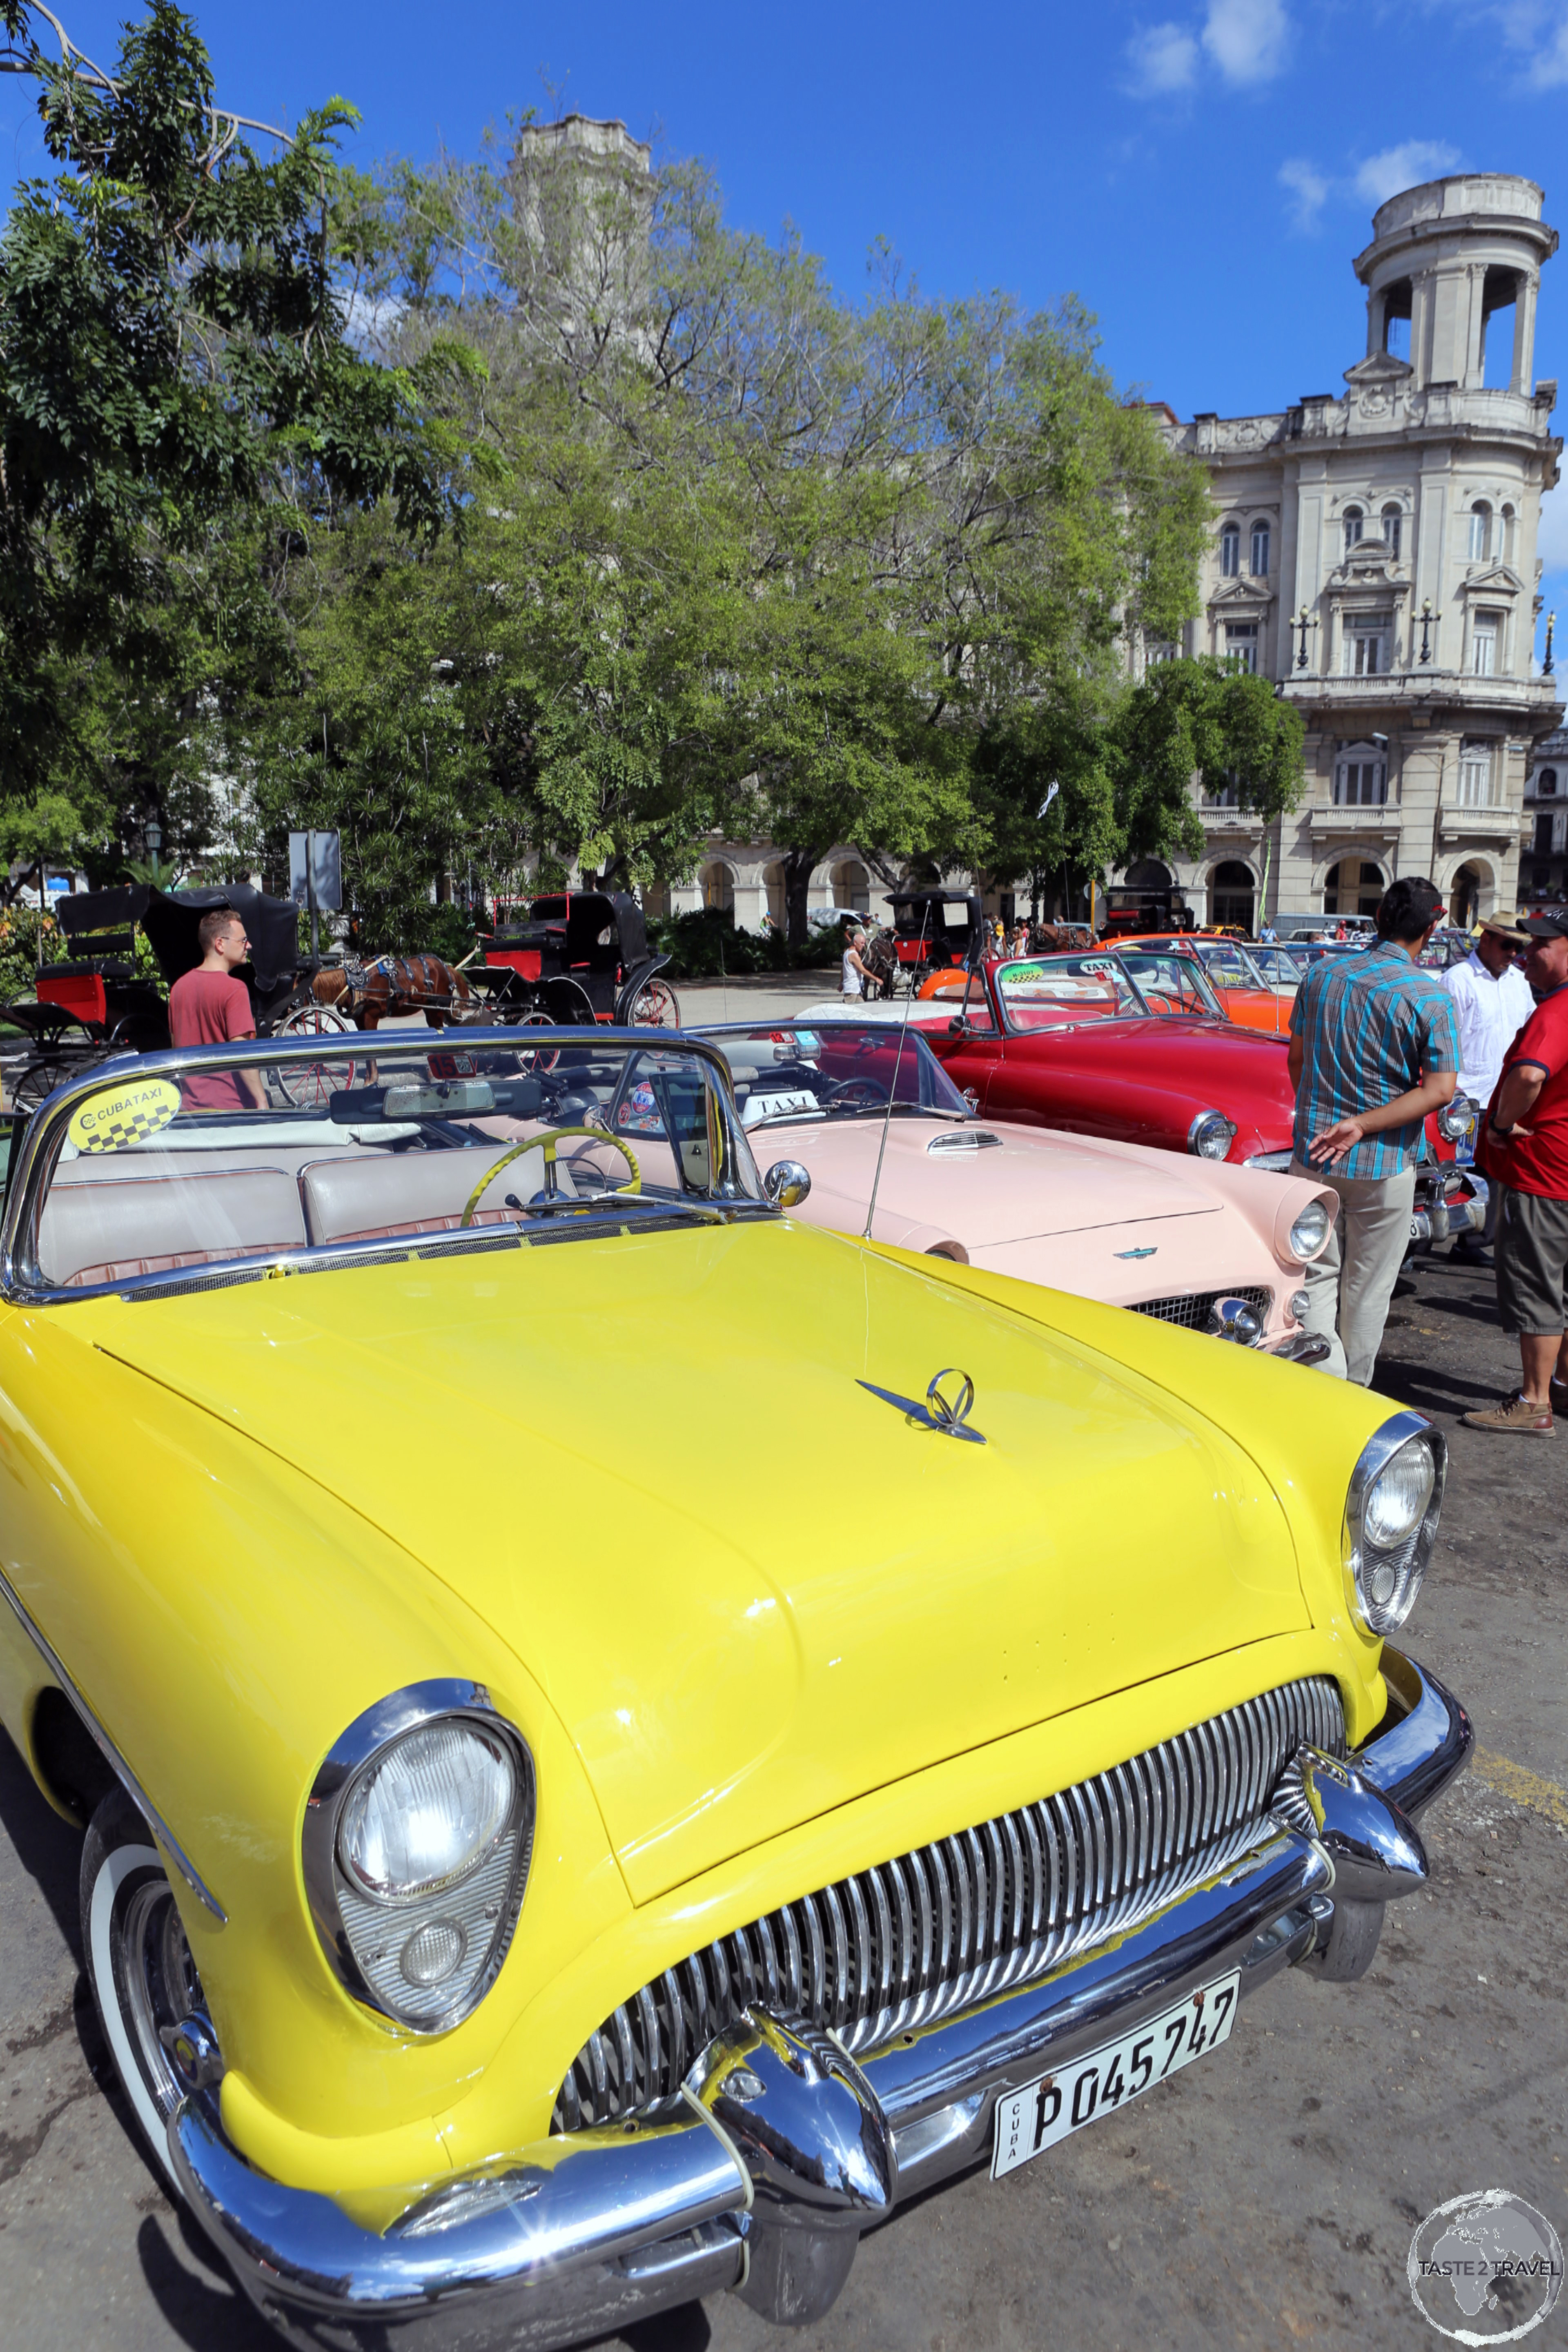 American classic car taxi's available for hire at Central Park.